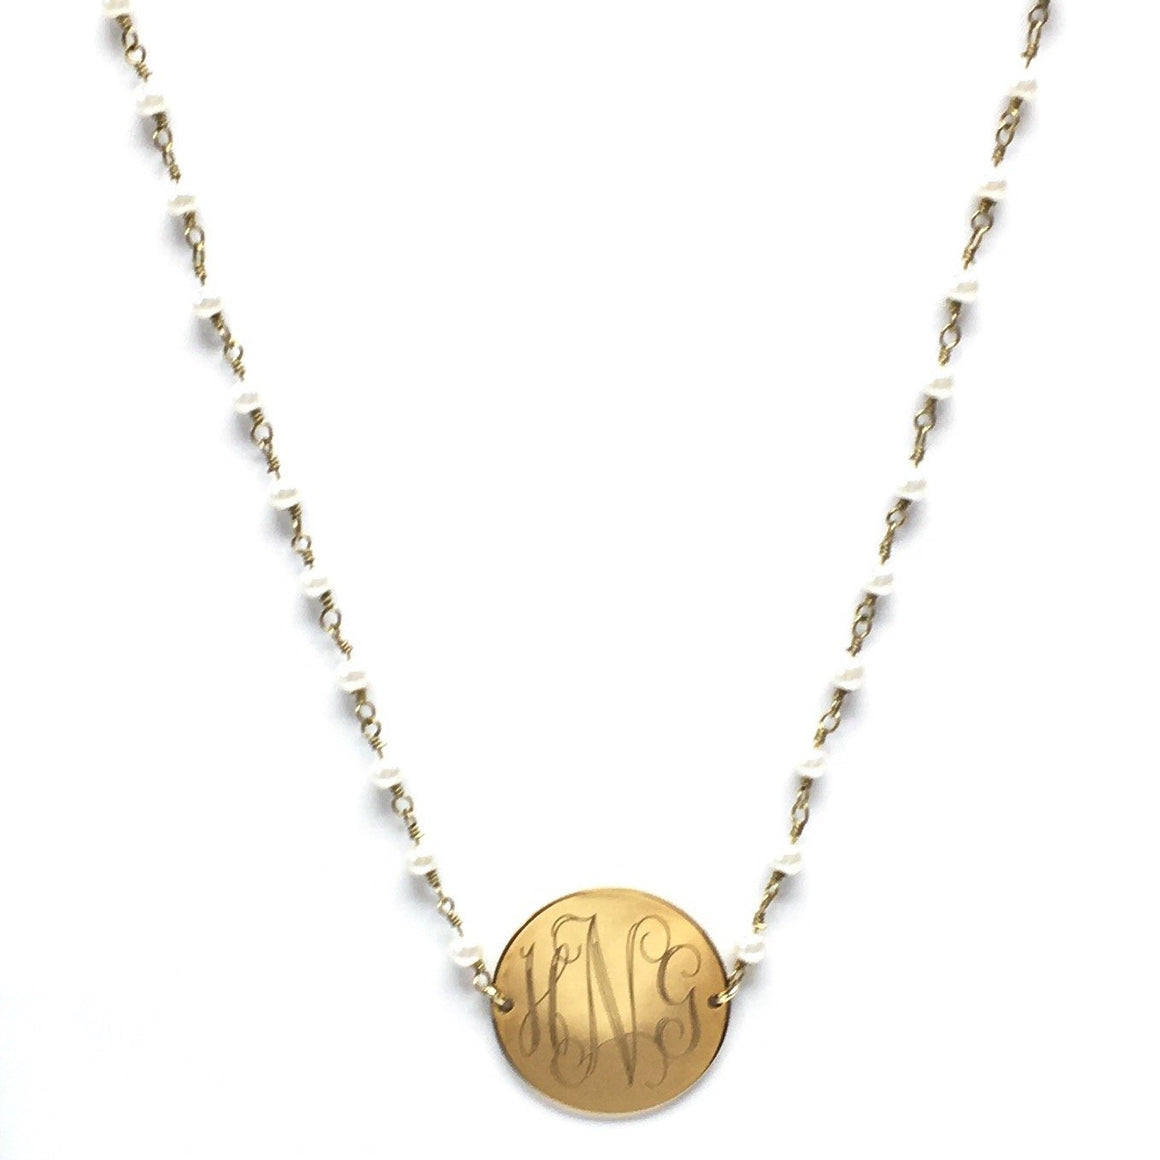 Engraveable Pearl Necklace With Personalized Steel Pendant in Gold And Silver atlanta-jewelers-supply.myshopify.com